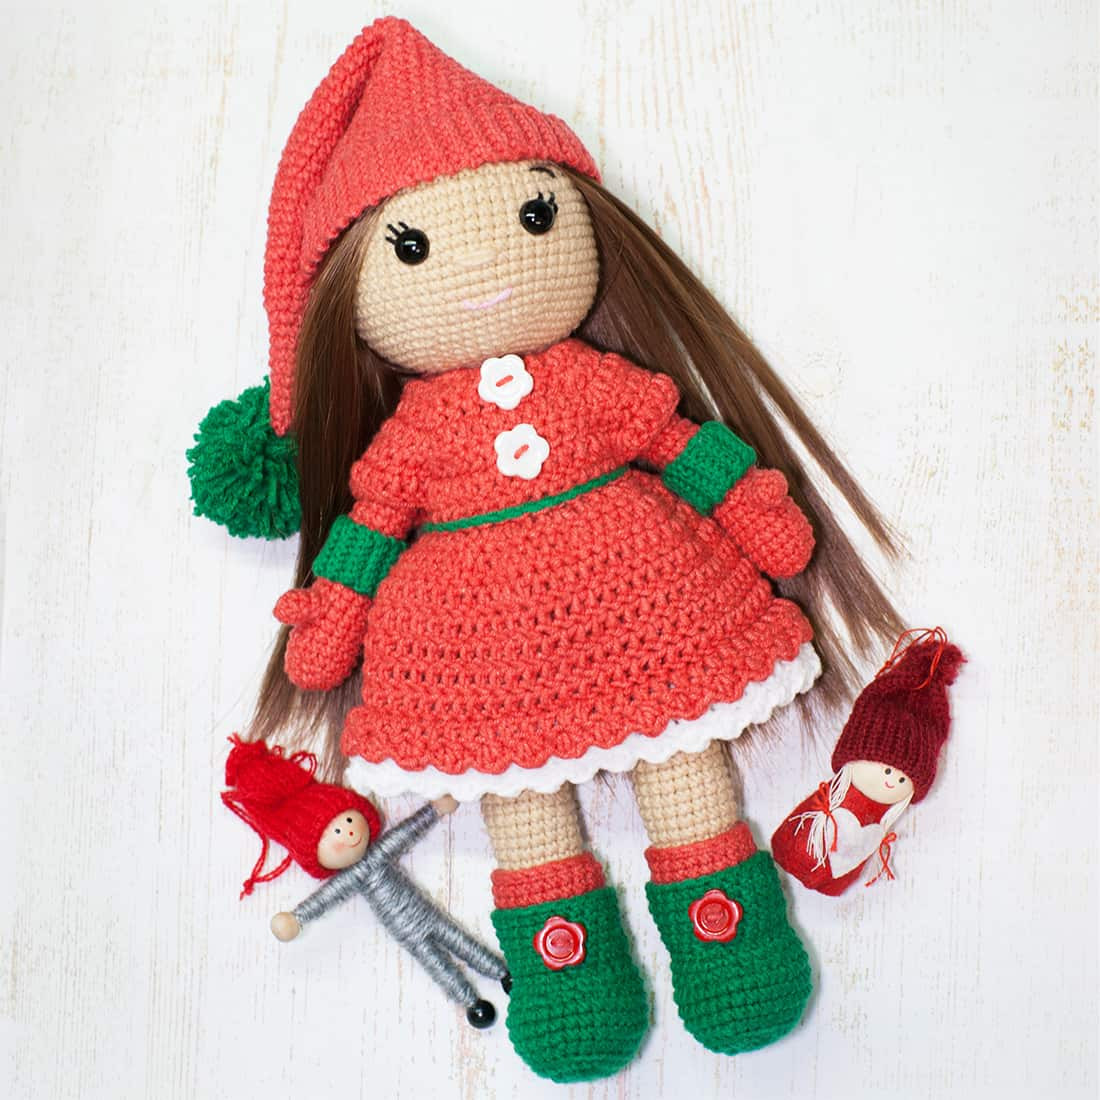 Doll Patterns New Christmas Doll Crochet Pattern Amigurumi today Of Doll Patterns Best Of My Rag Doll Adorable Dolls to Sew